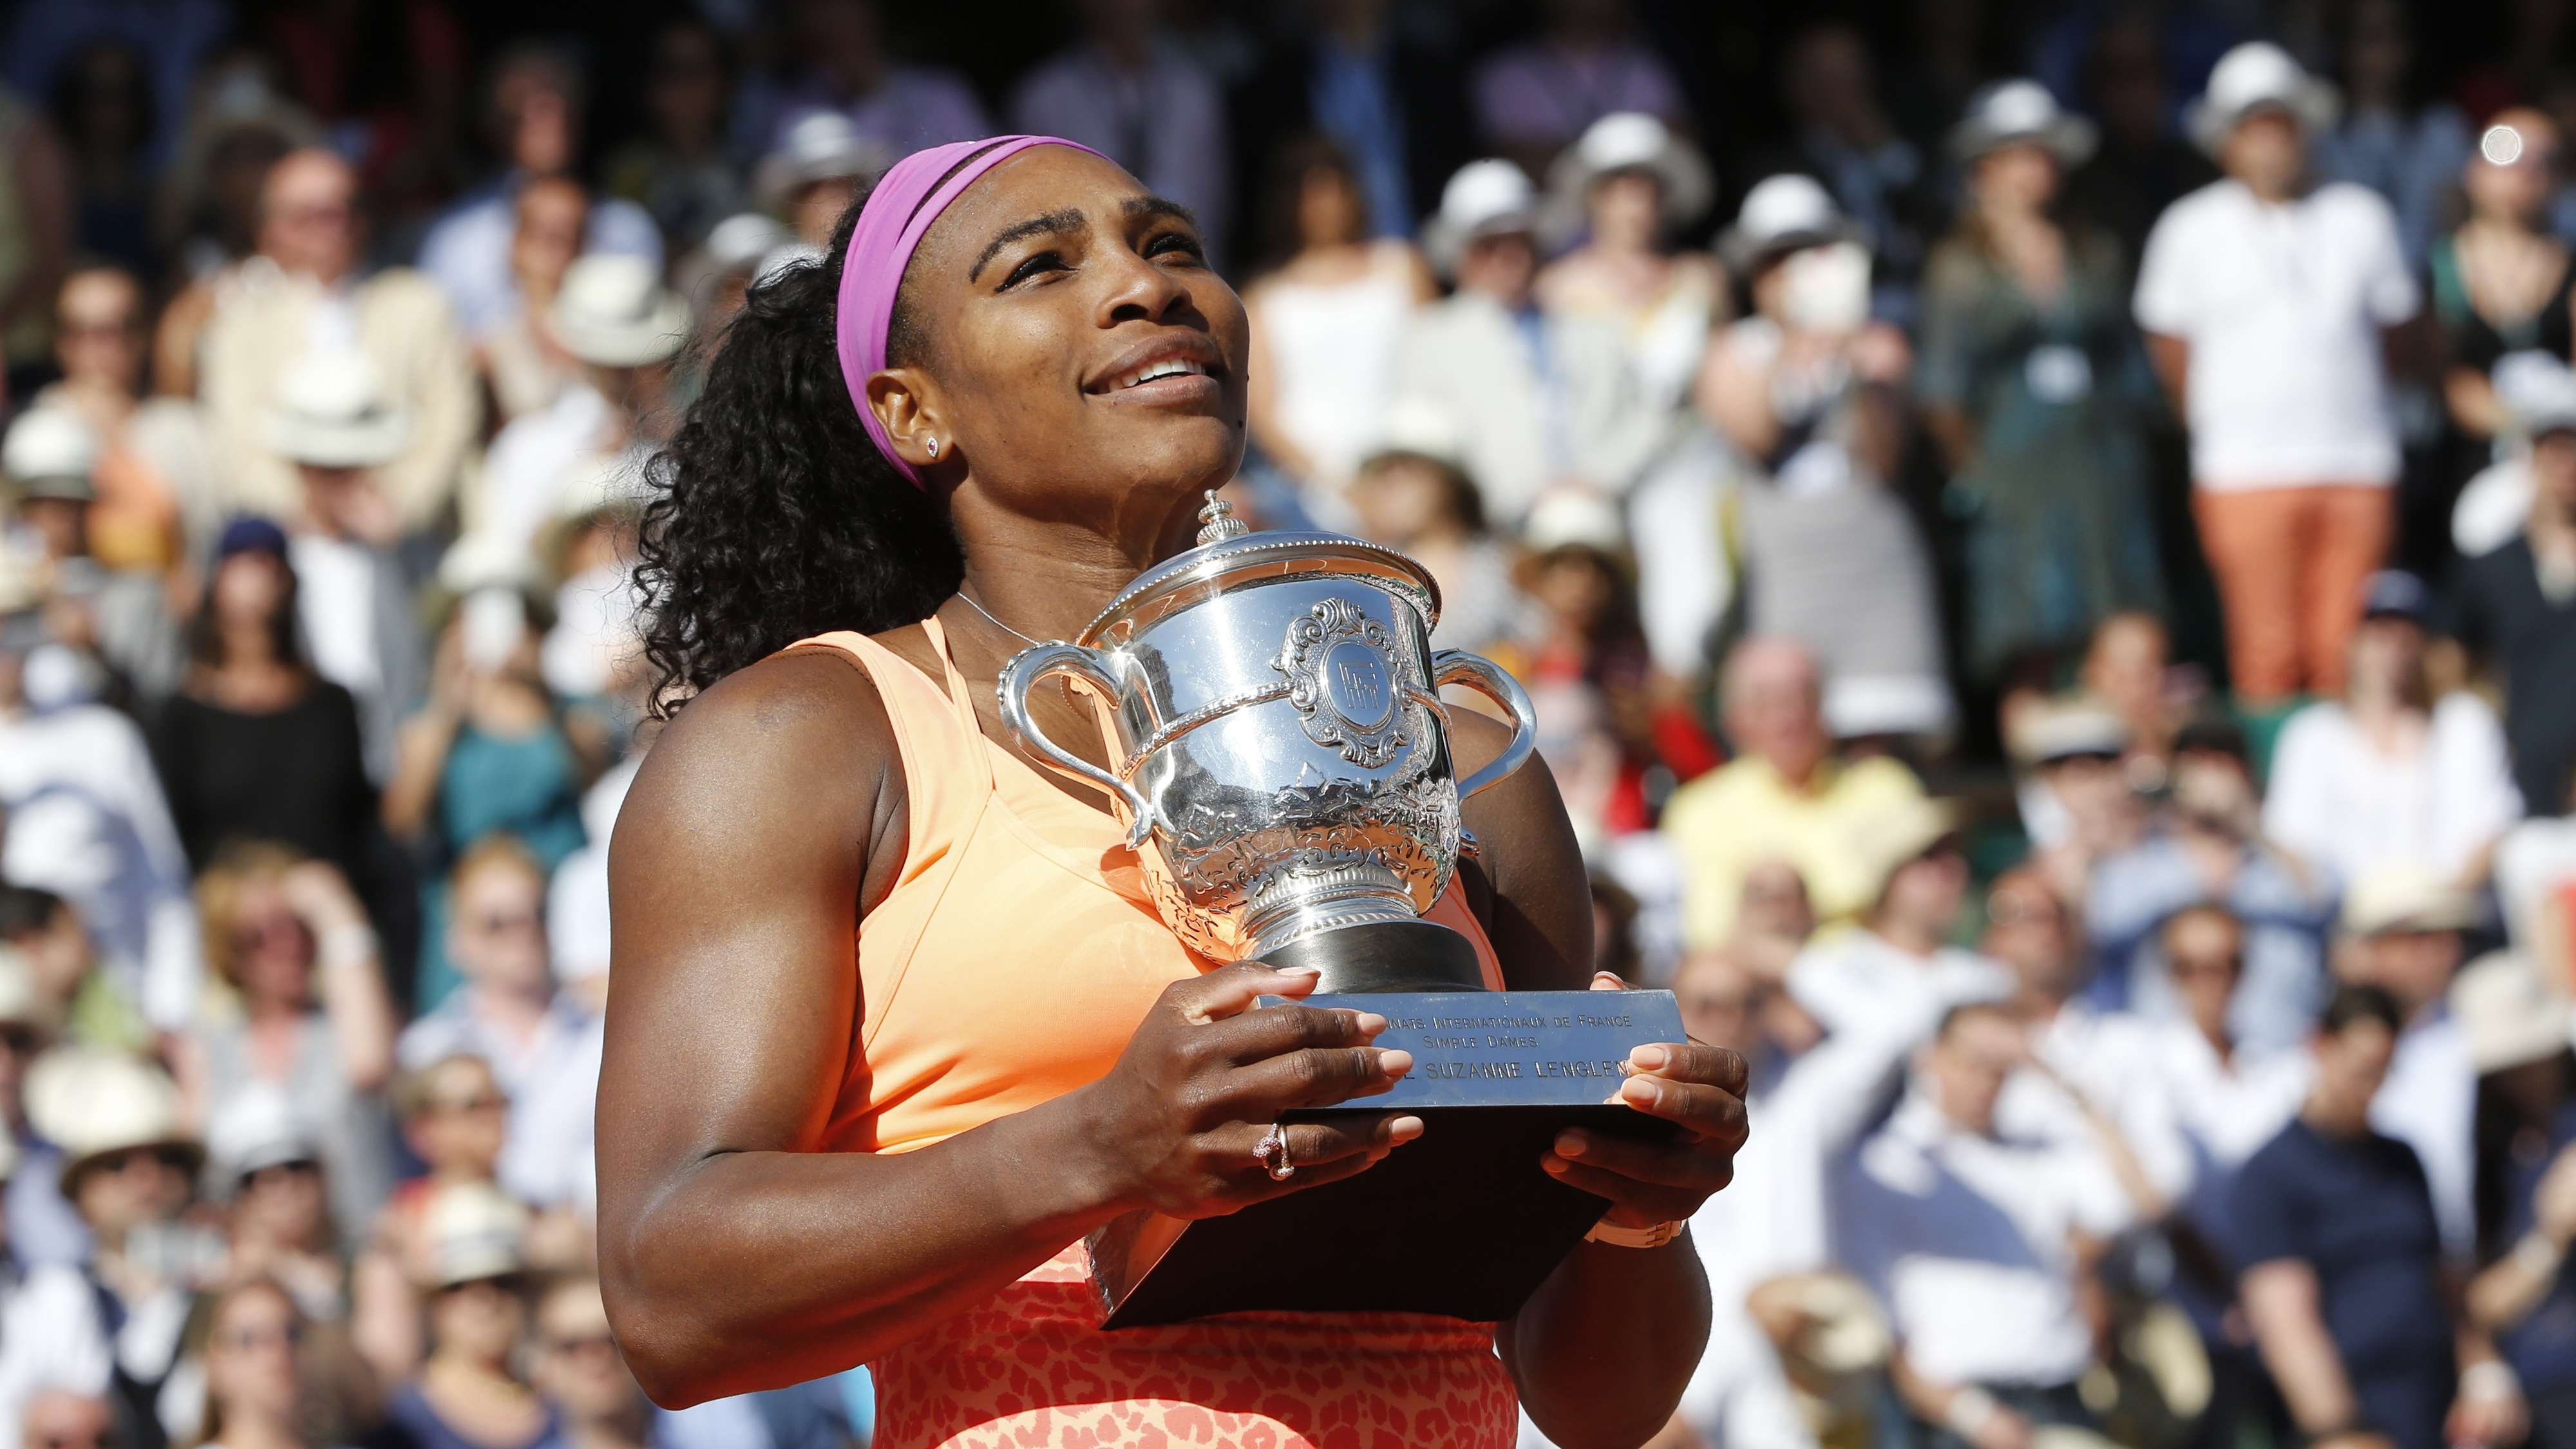 Serena Williams of the U.S. poses with the trophy during the ceremony after defeating Lucie Safarova of the Czech Republic during their women's singles final match to win the French Open tennis tournament at the Roland Garros stadium in Paris, France, June 6, 2015.